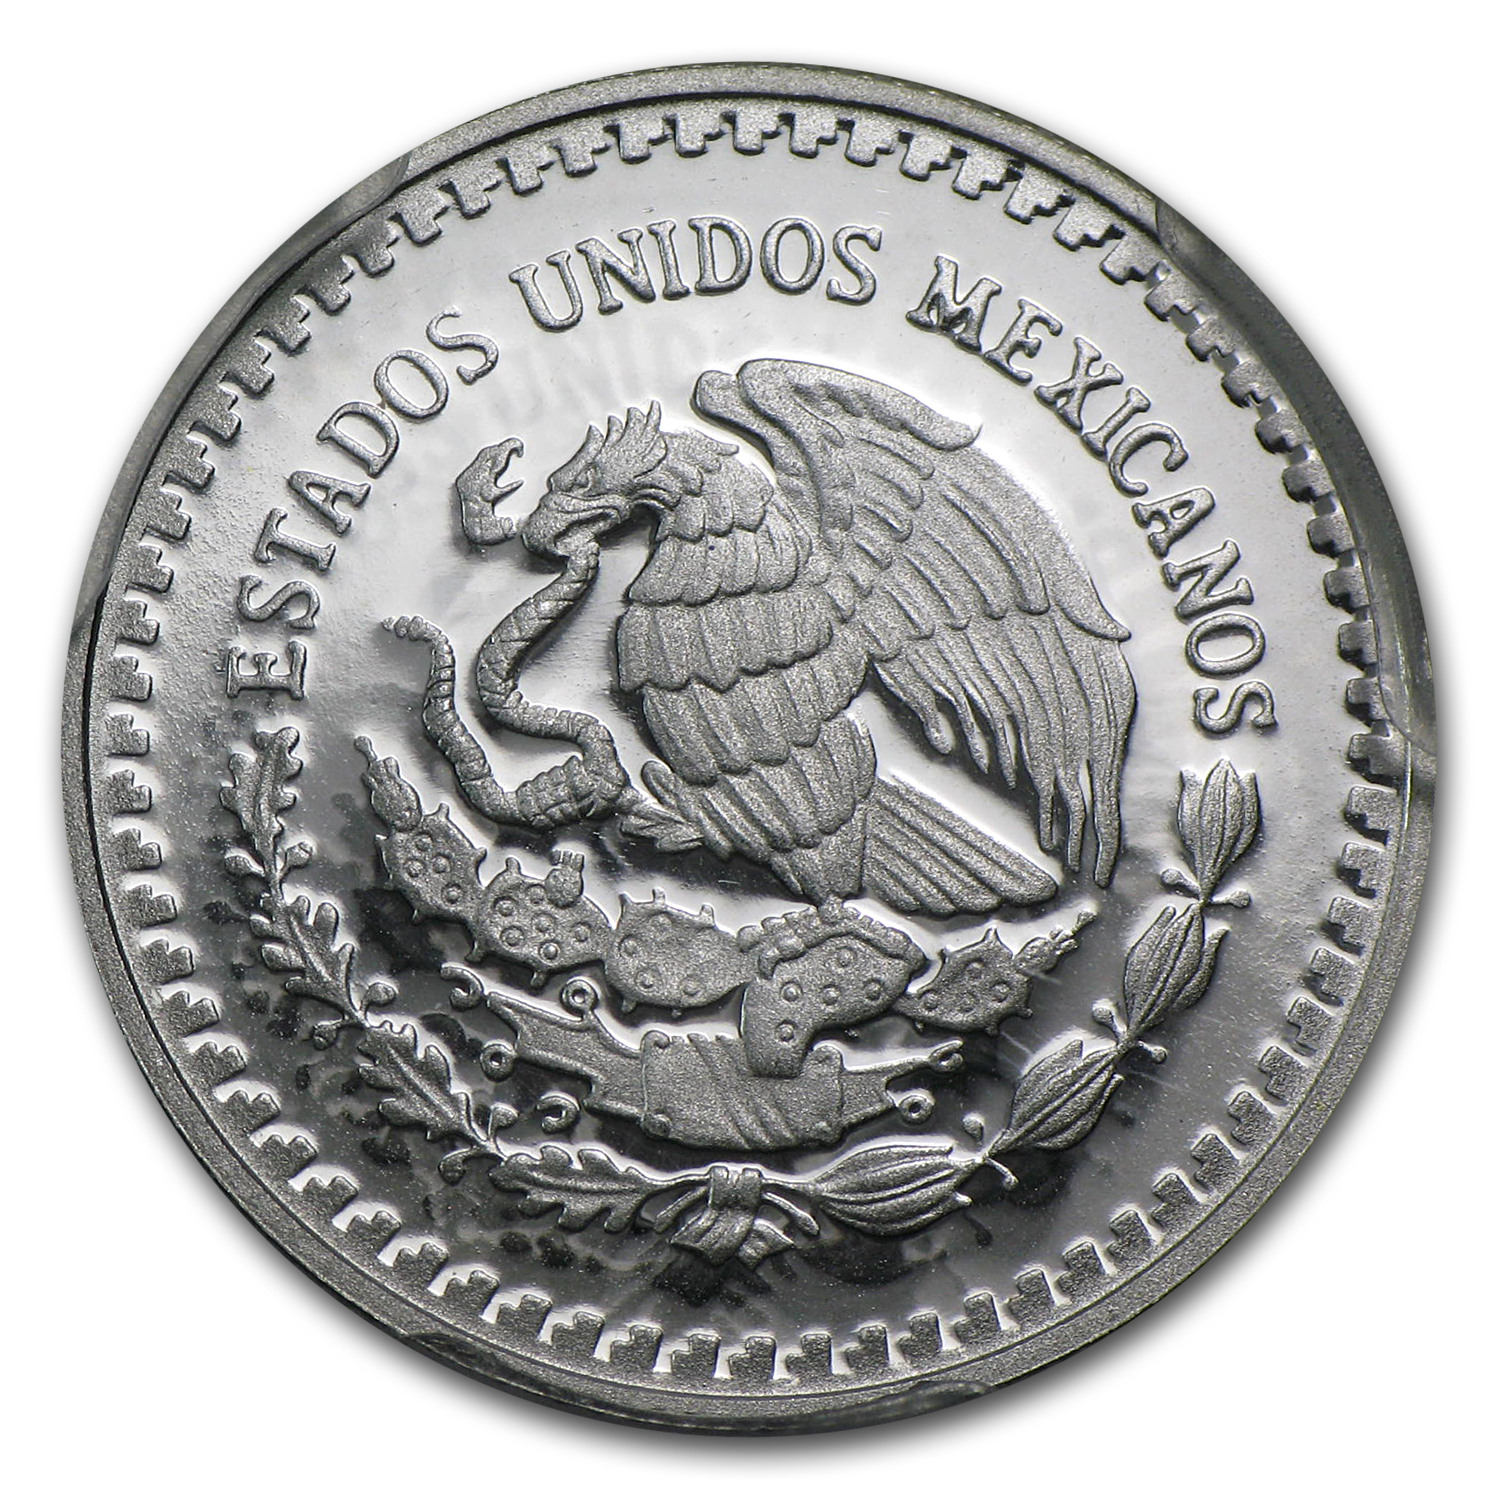 2009 Mexico 1/10 oz Proof Silver Libertad PR-69 PCGS